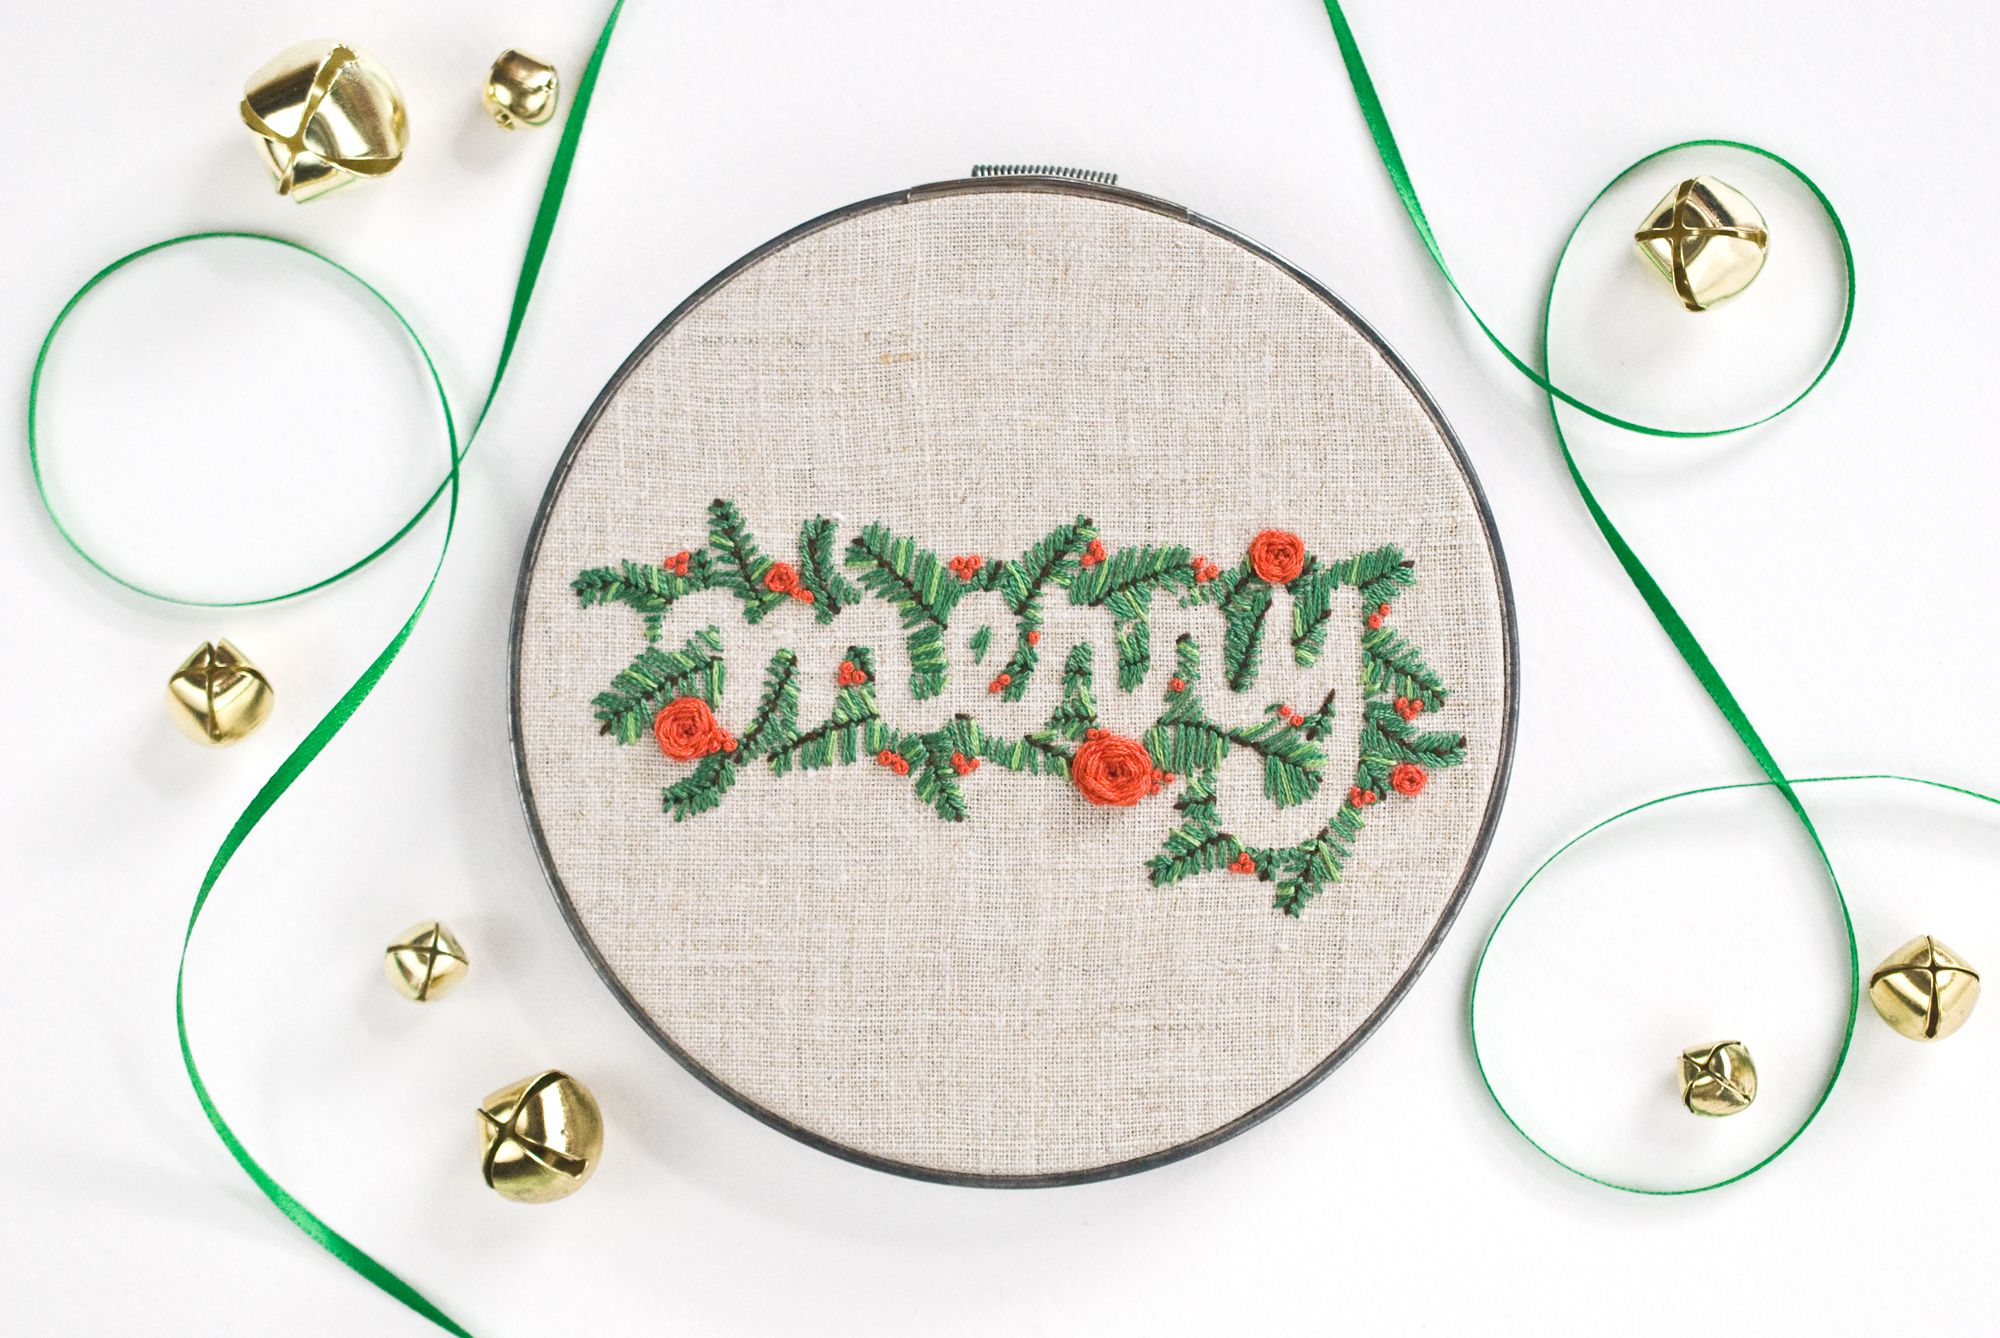 Merry word art embroidery pattern